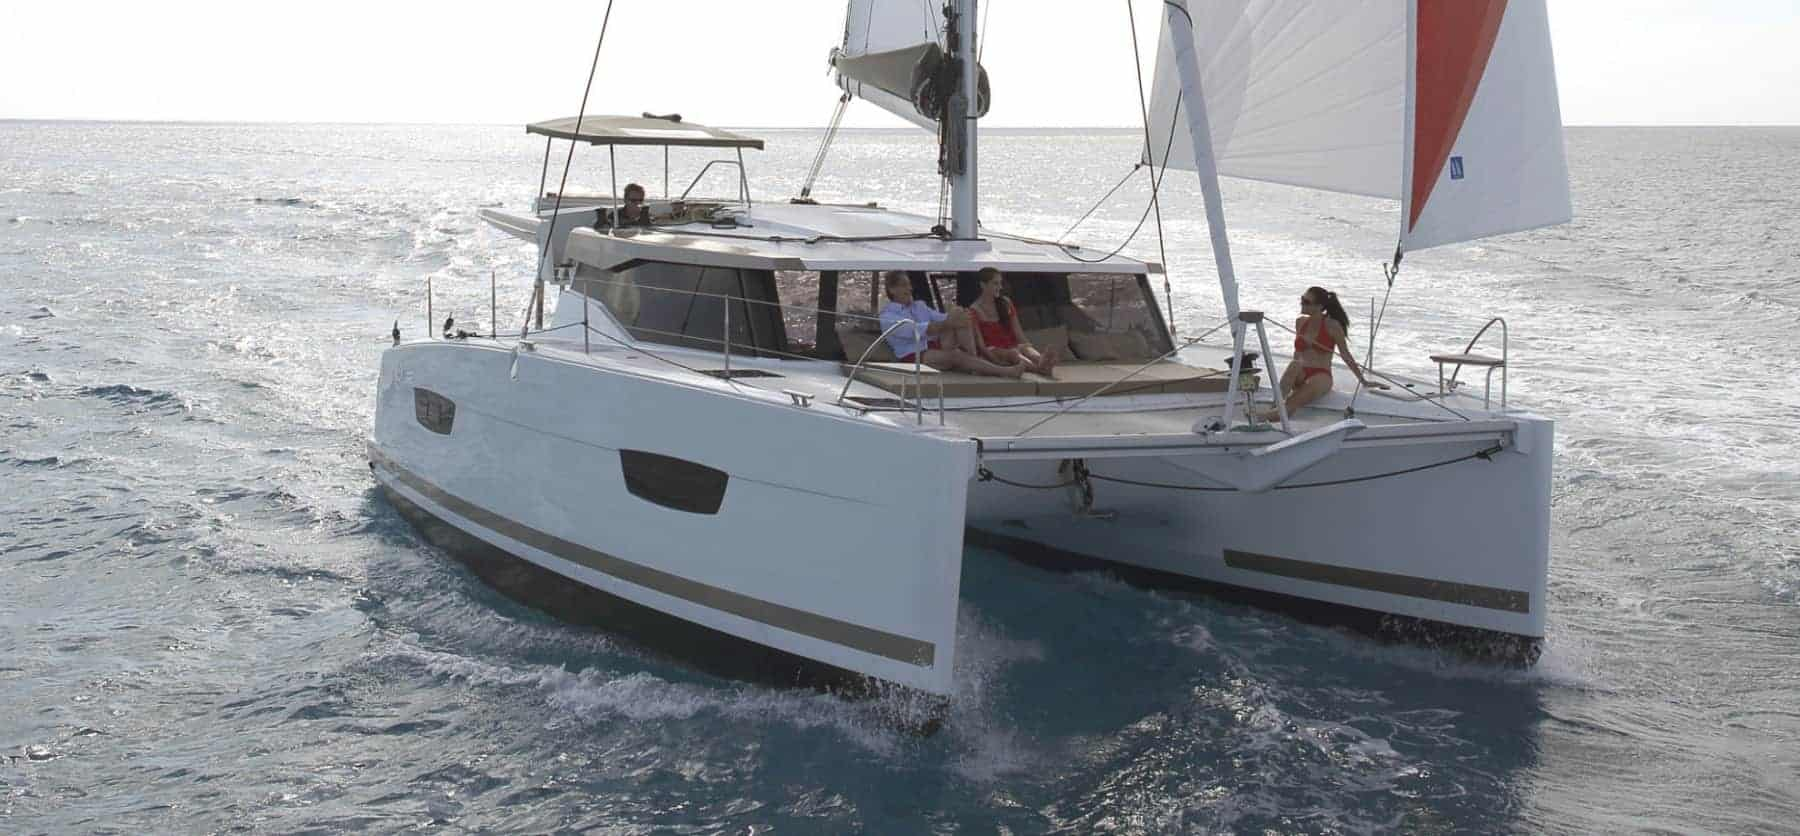 Fountaine Pajot Lucia 40 with wind in its sail a cloudy day and people chilling on the front deck